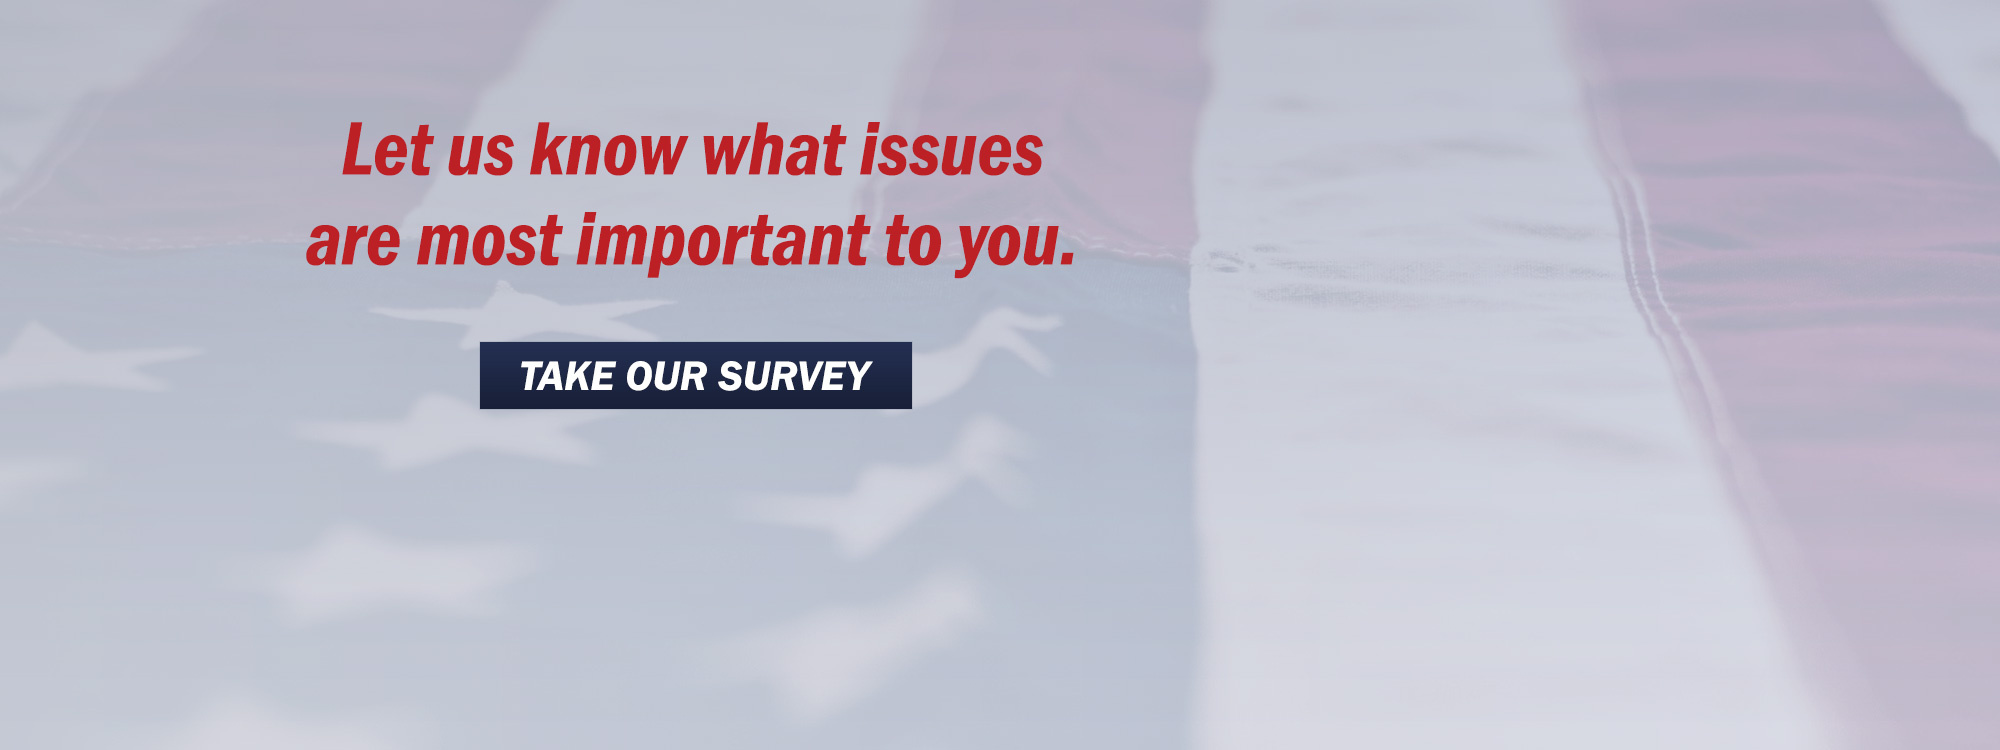 Let us know what issues are most important to you.